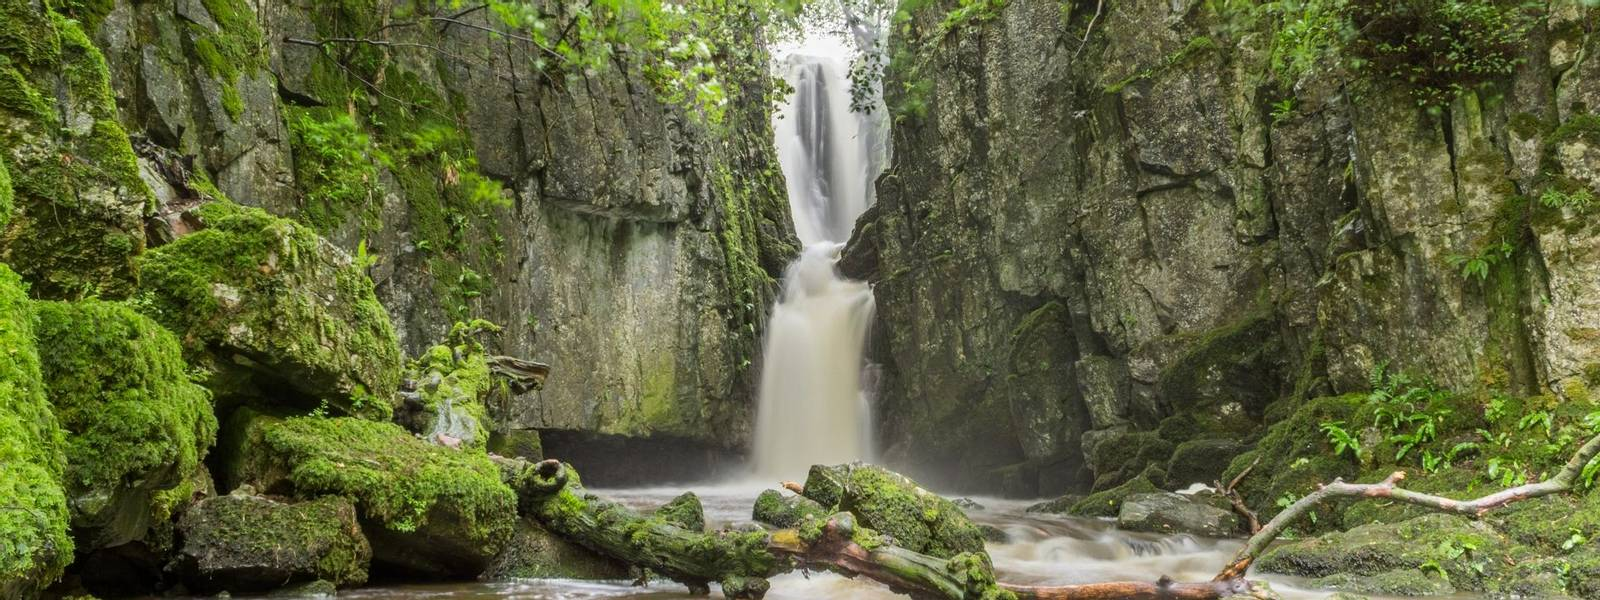 Southern Yorkshire Dales - Gentle Guided - AdobeStock_265223788.jpeg